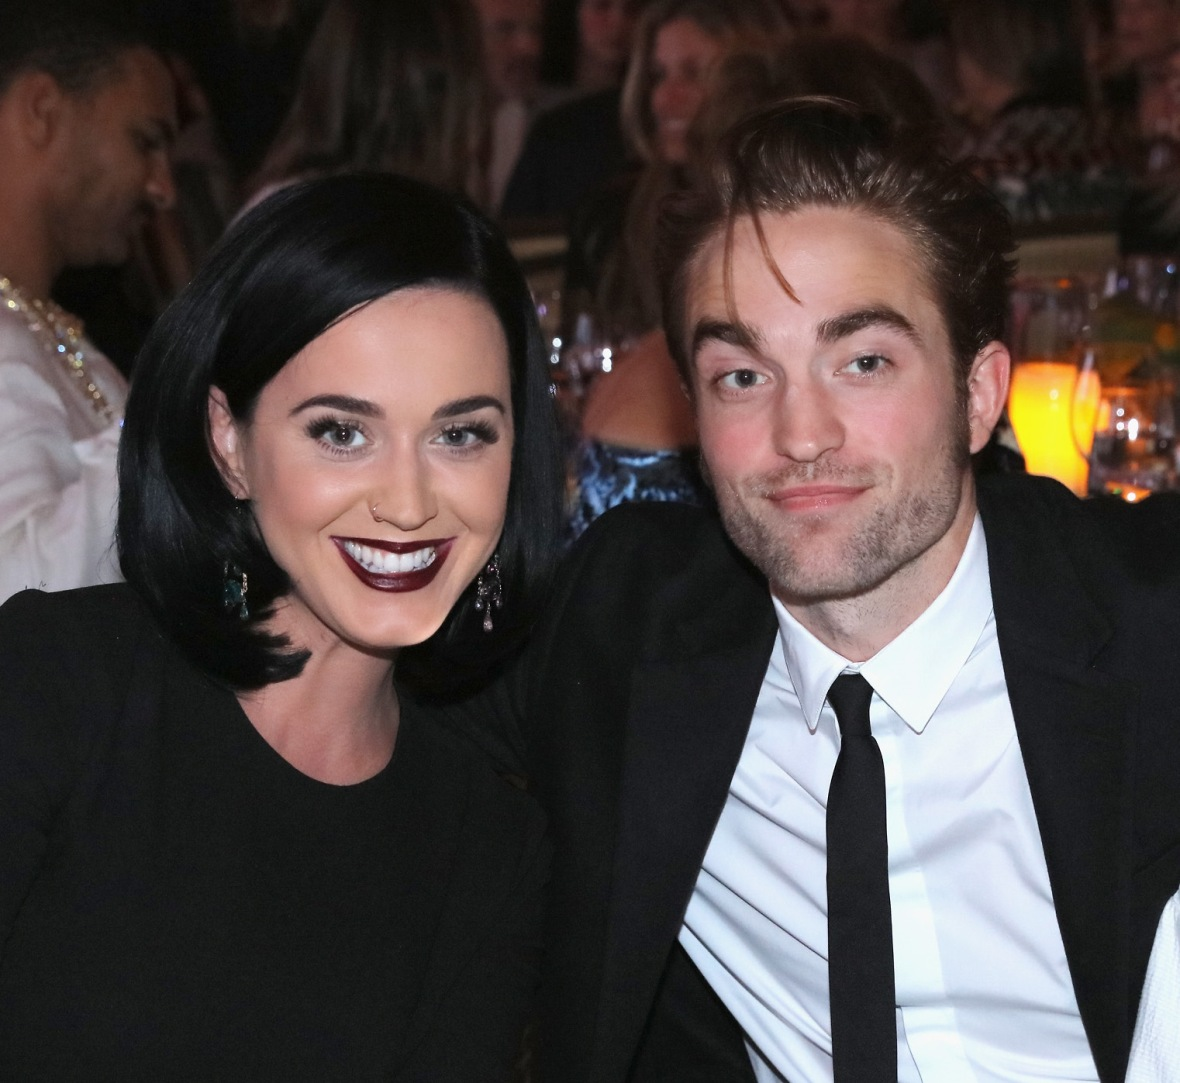 robert pattinson katy perry getty images